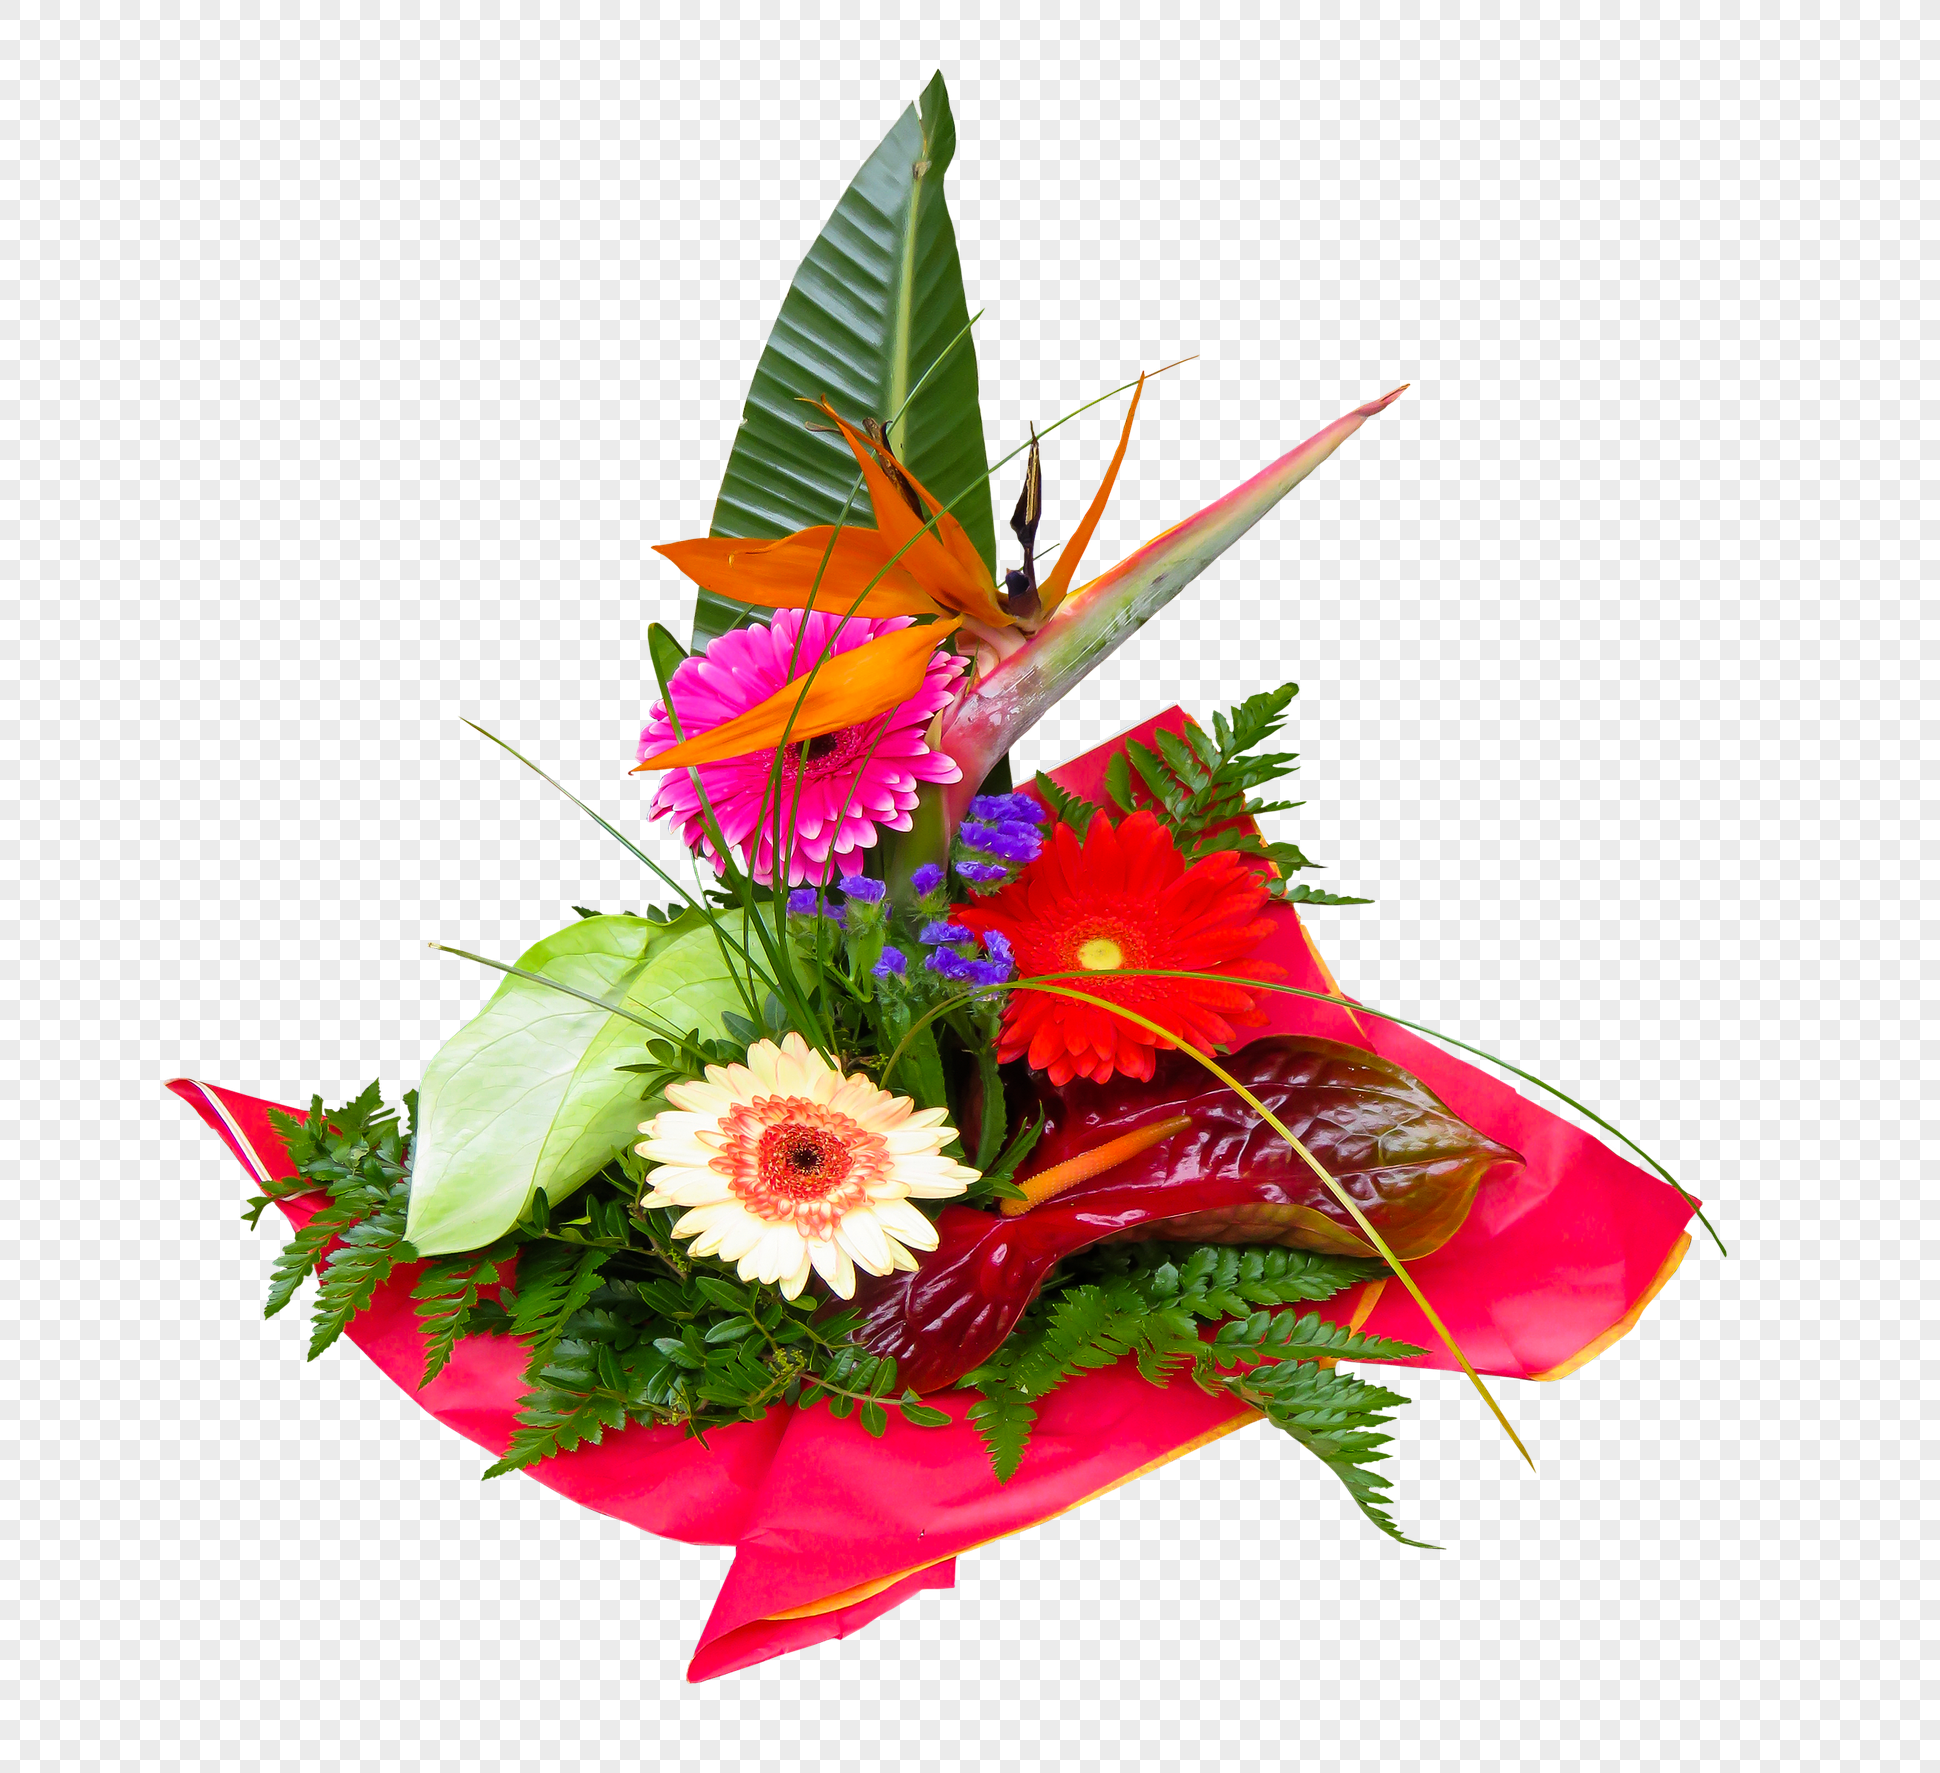 Hd Decorative Flowers Bouquet Materials Png Imagepicture Free